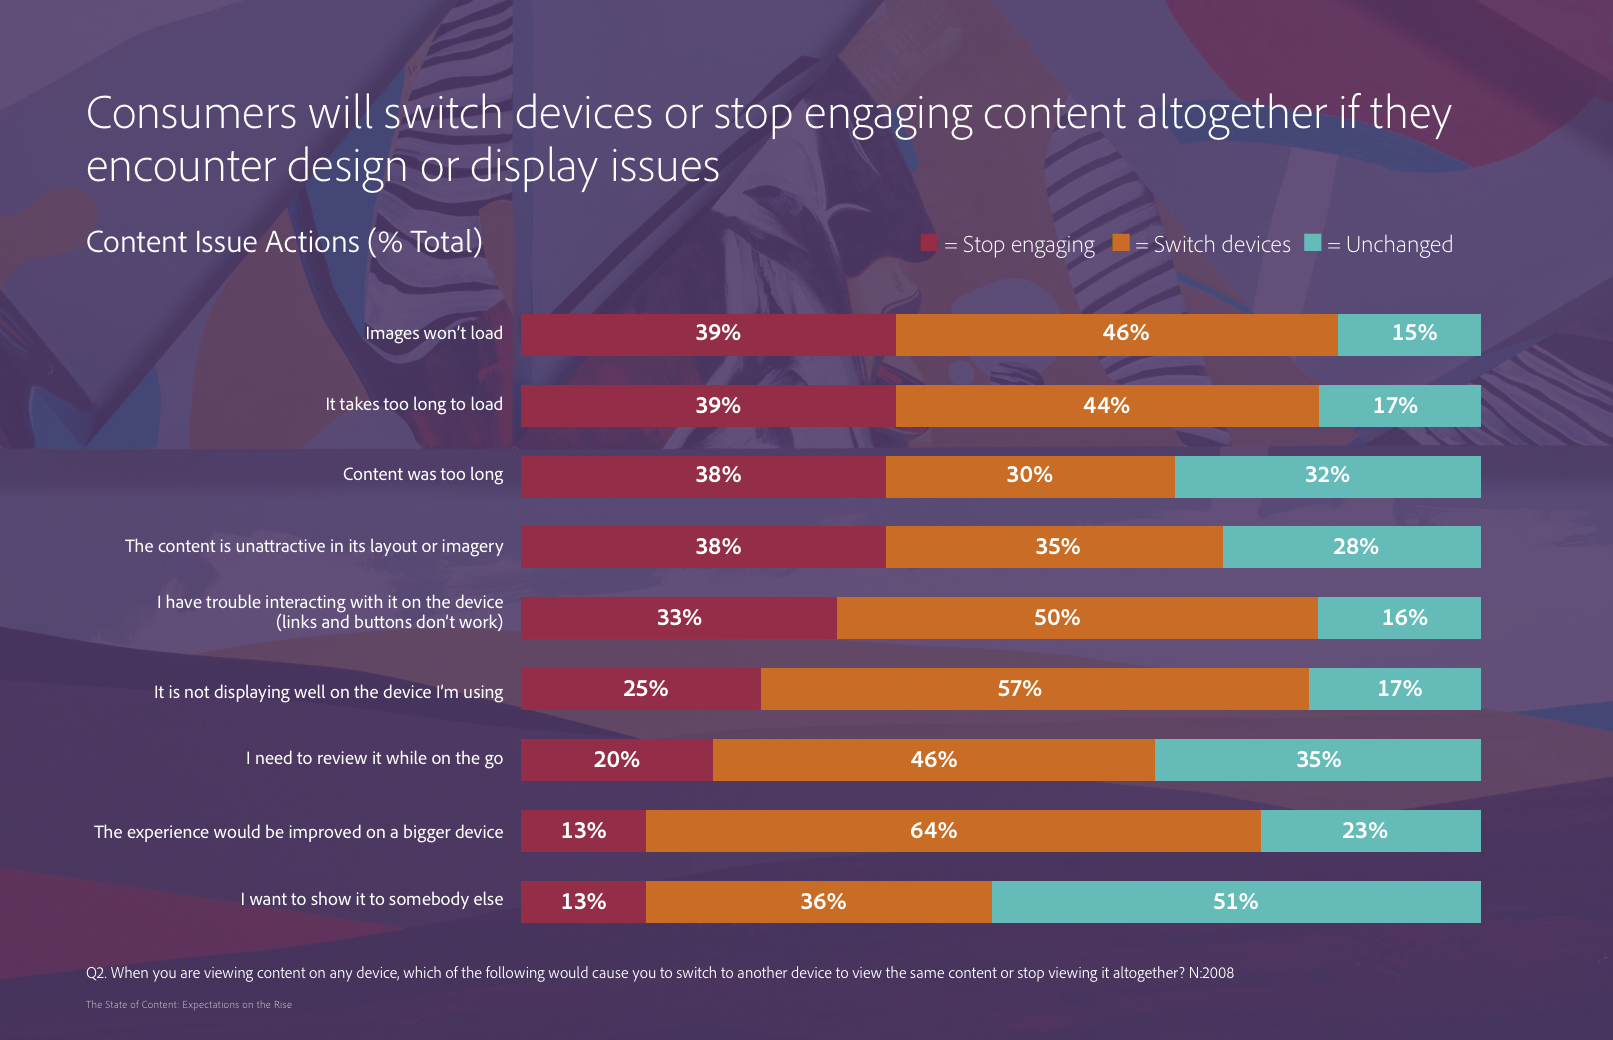 Consumer Response To Design Issues Adobe